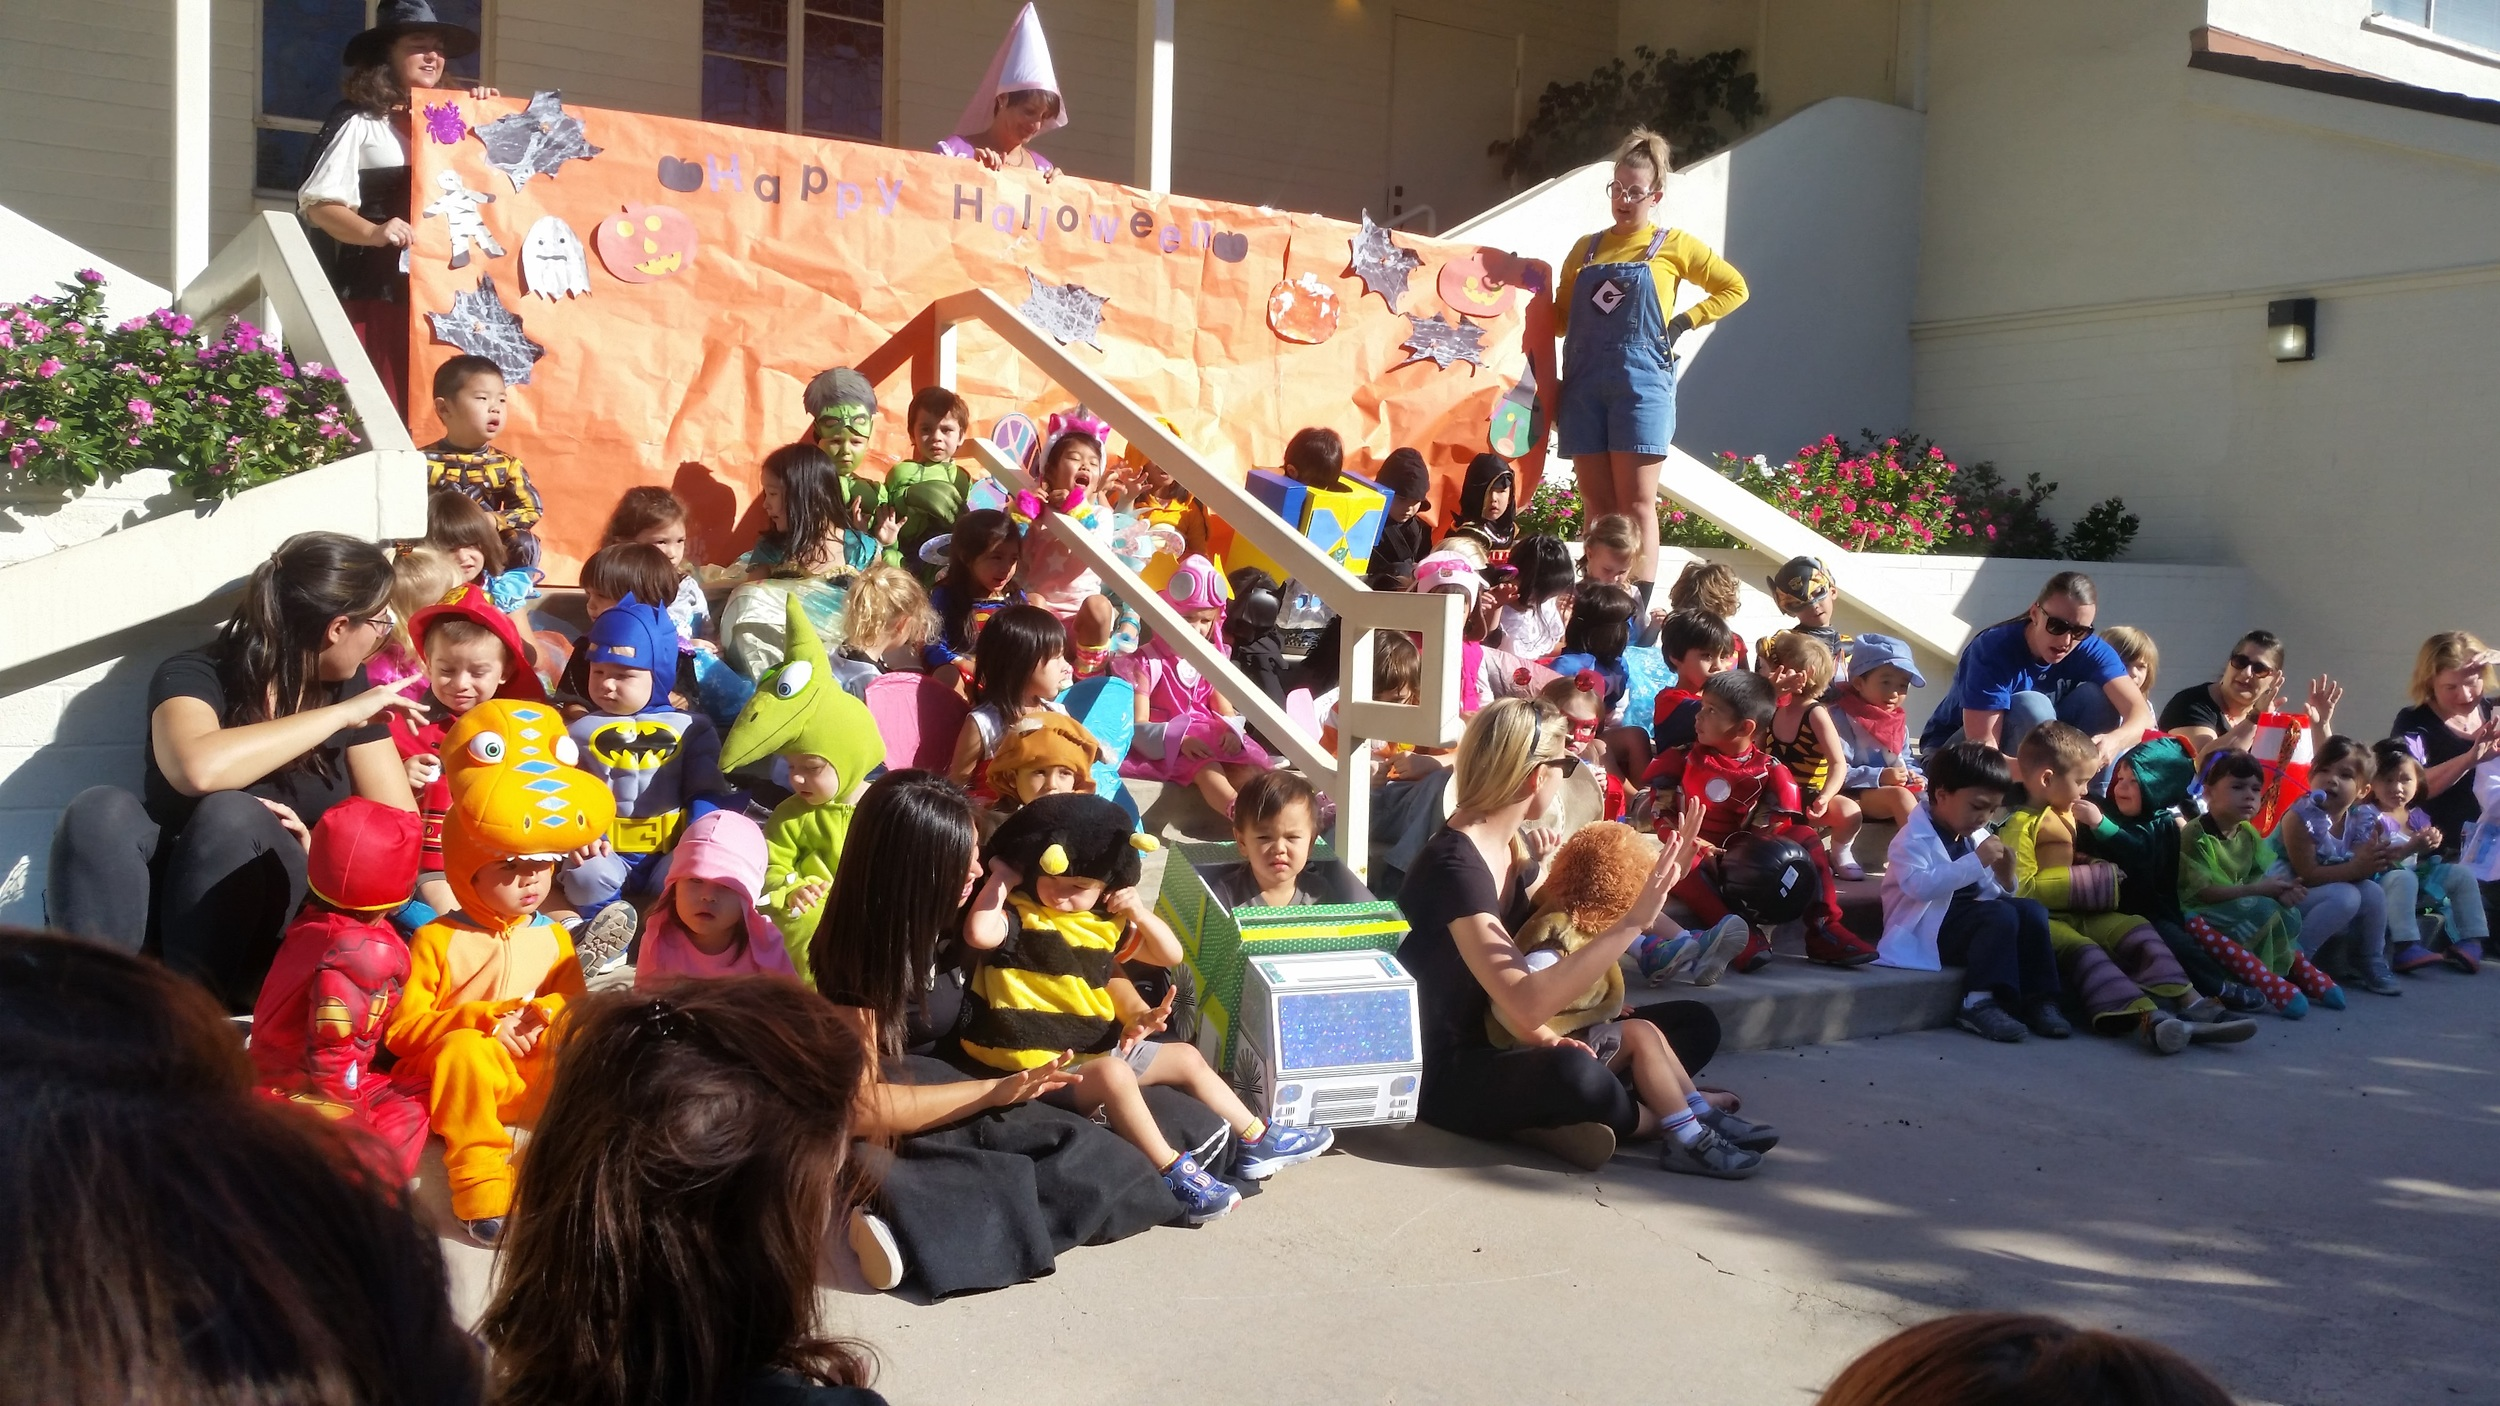 hastings ranch nursery school halloween